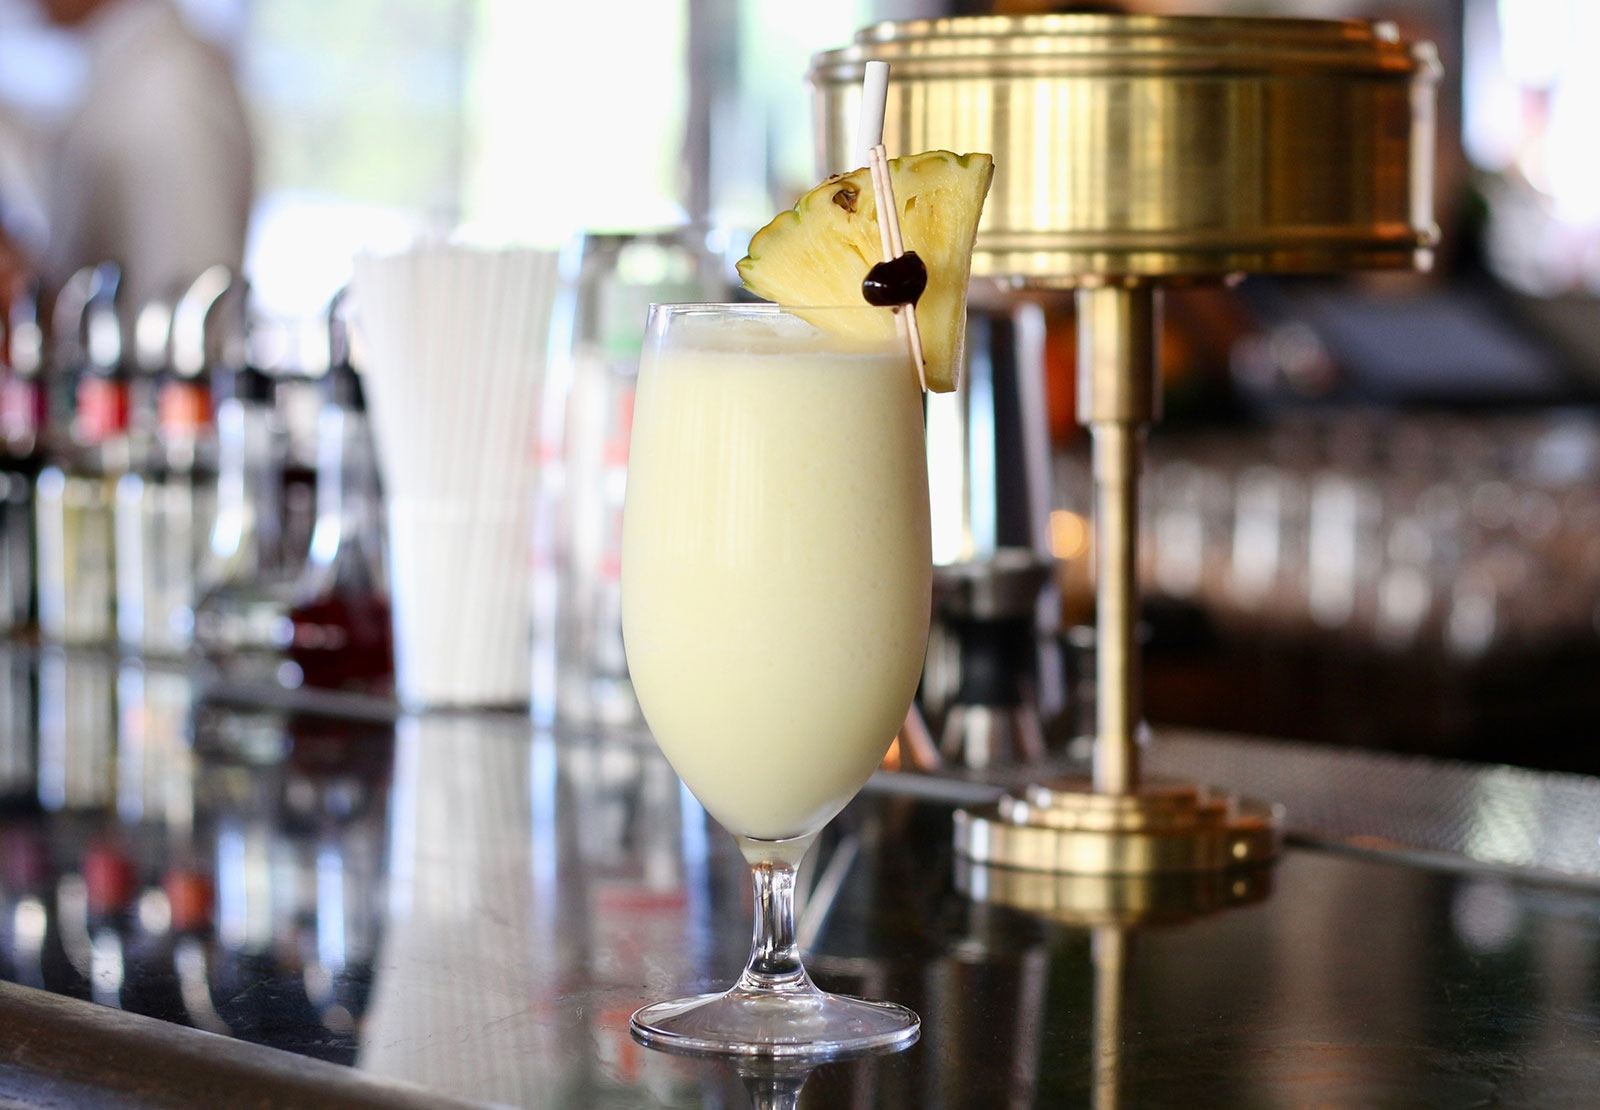 Pina Colada on a bar